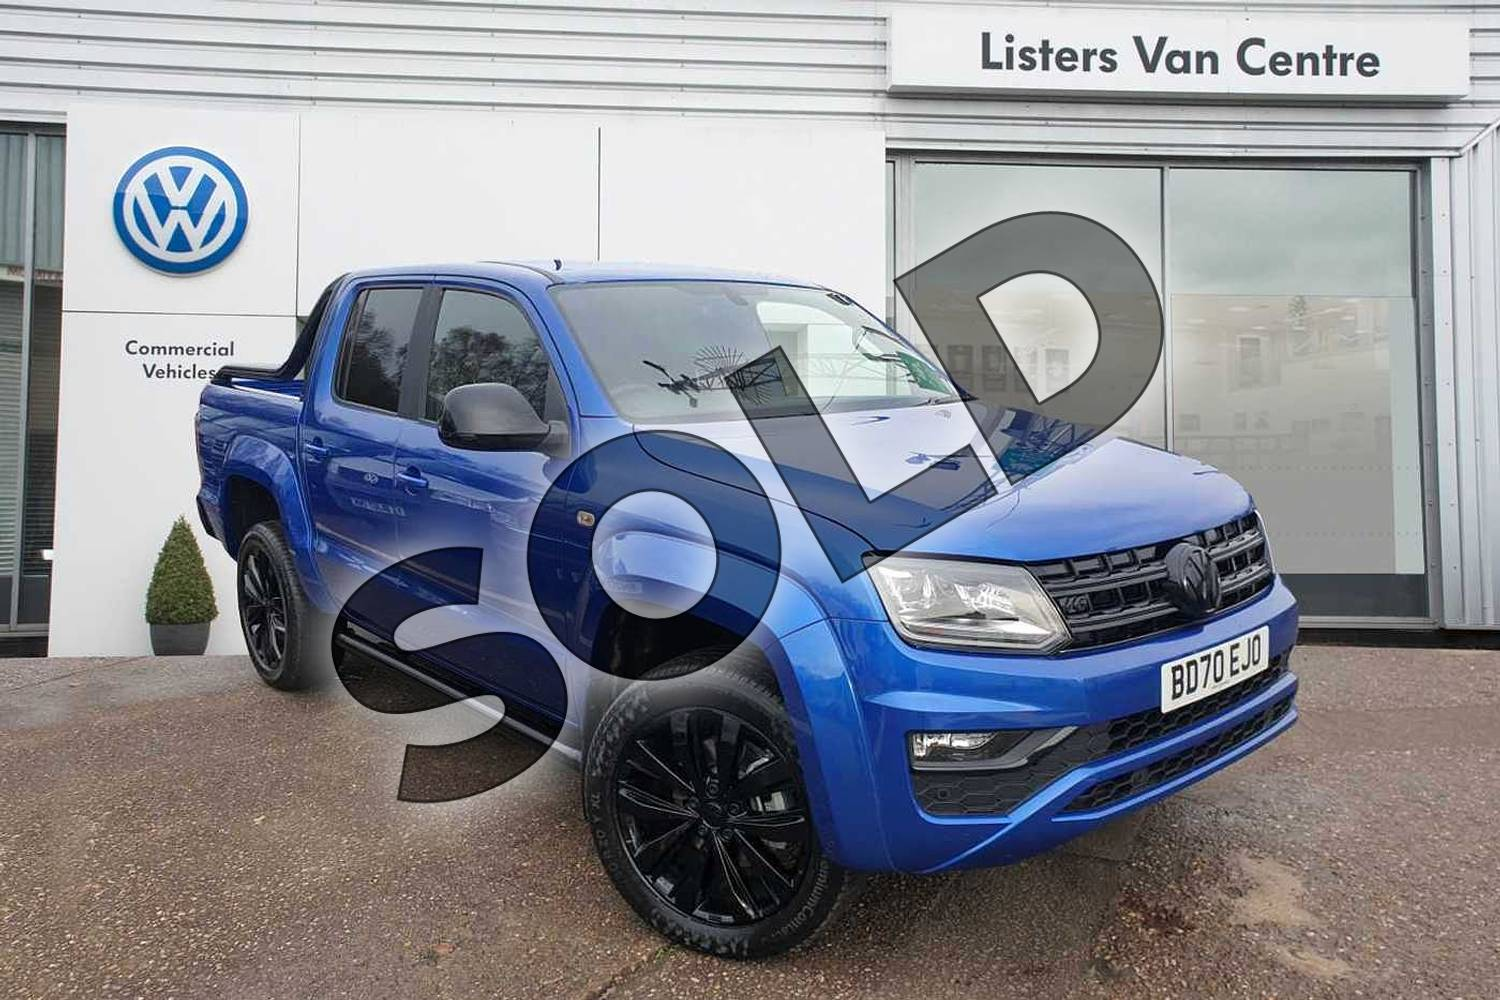 2020 Volkswagen Amarok 3.0TDI V6 (258PS) Eu6dT Black Edition 4M in Blue at Listers Volkswagen Van Centre Coventry